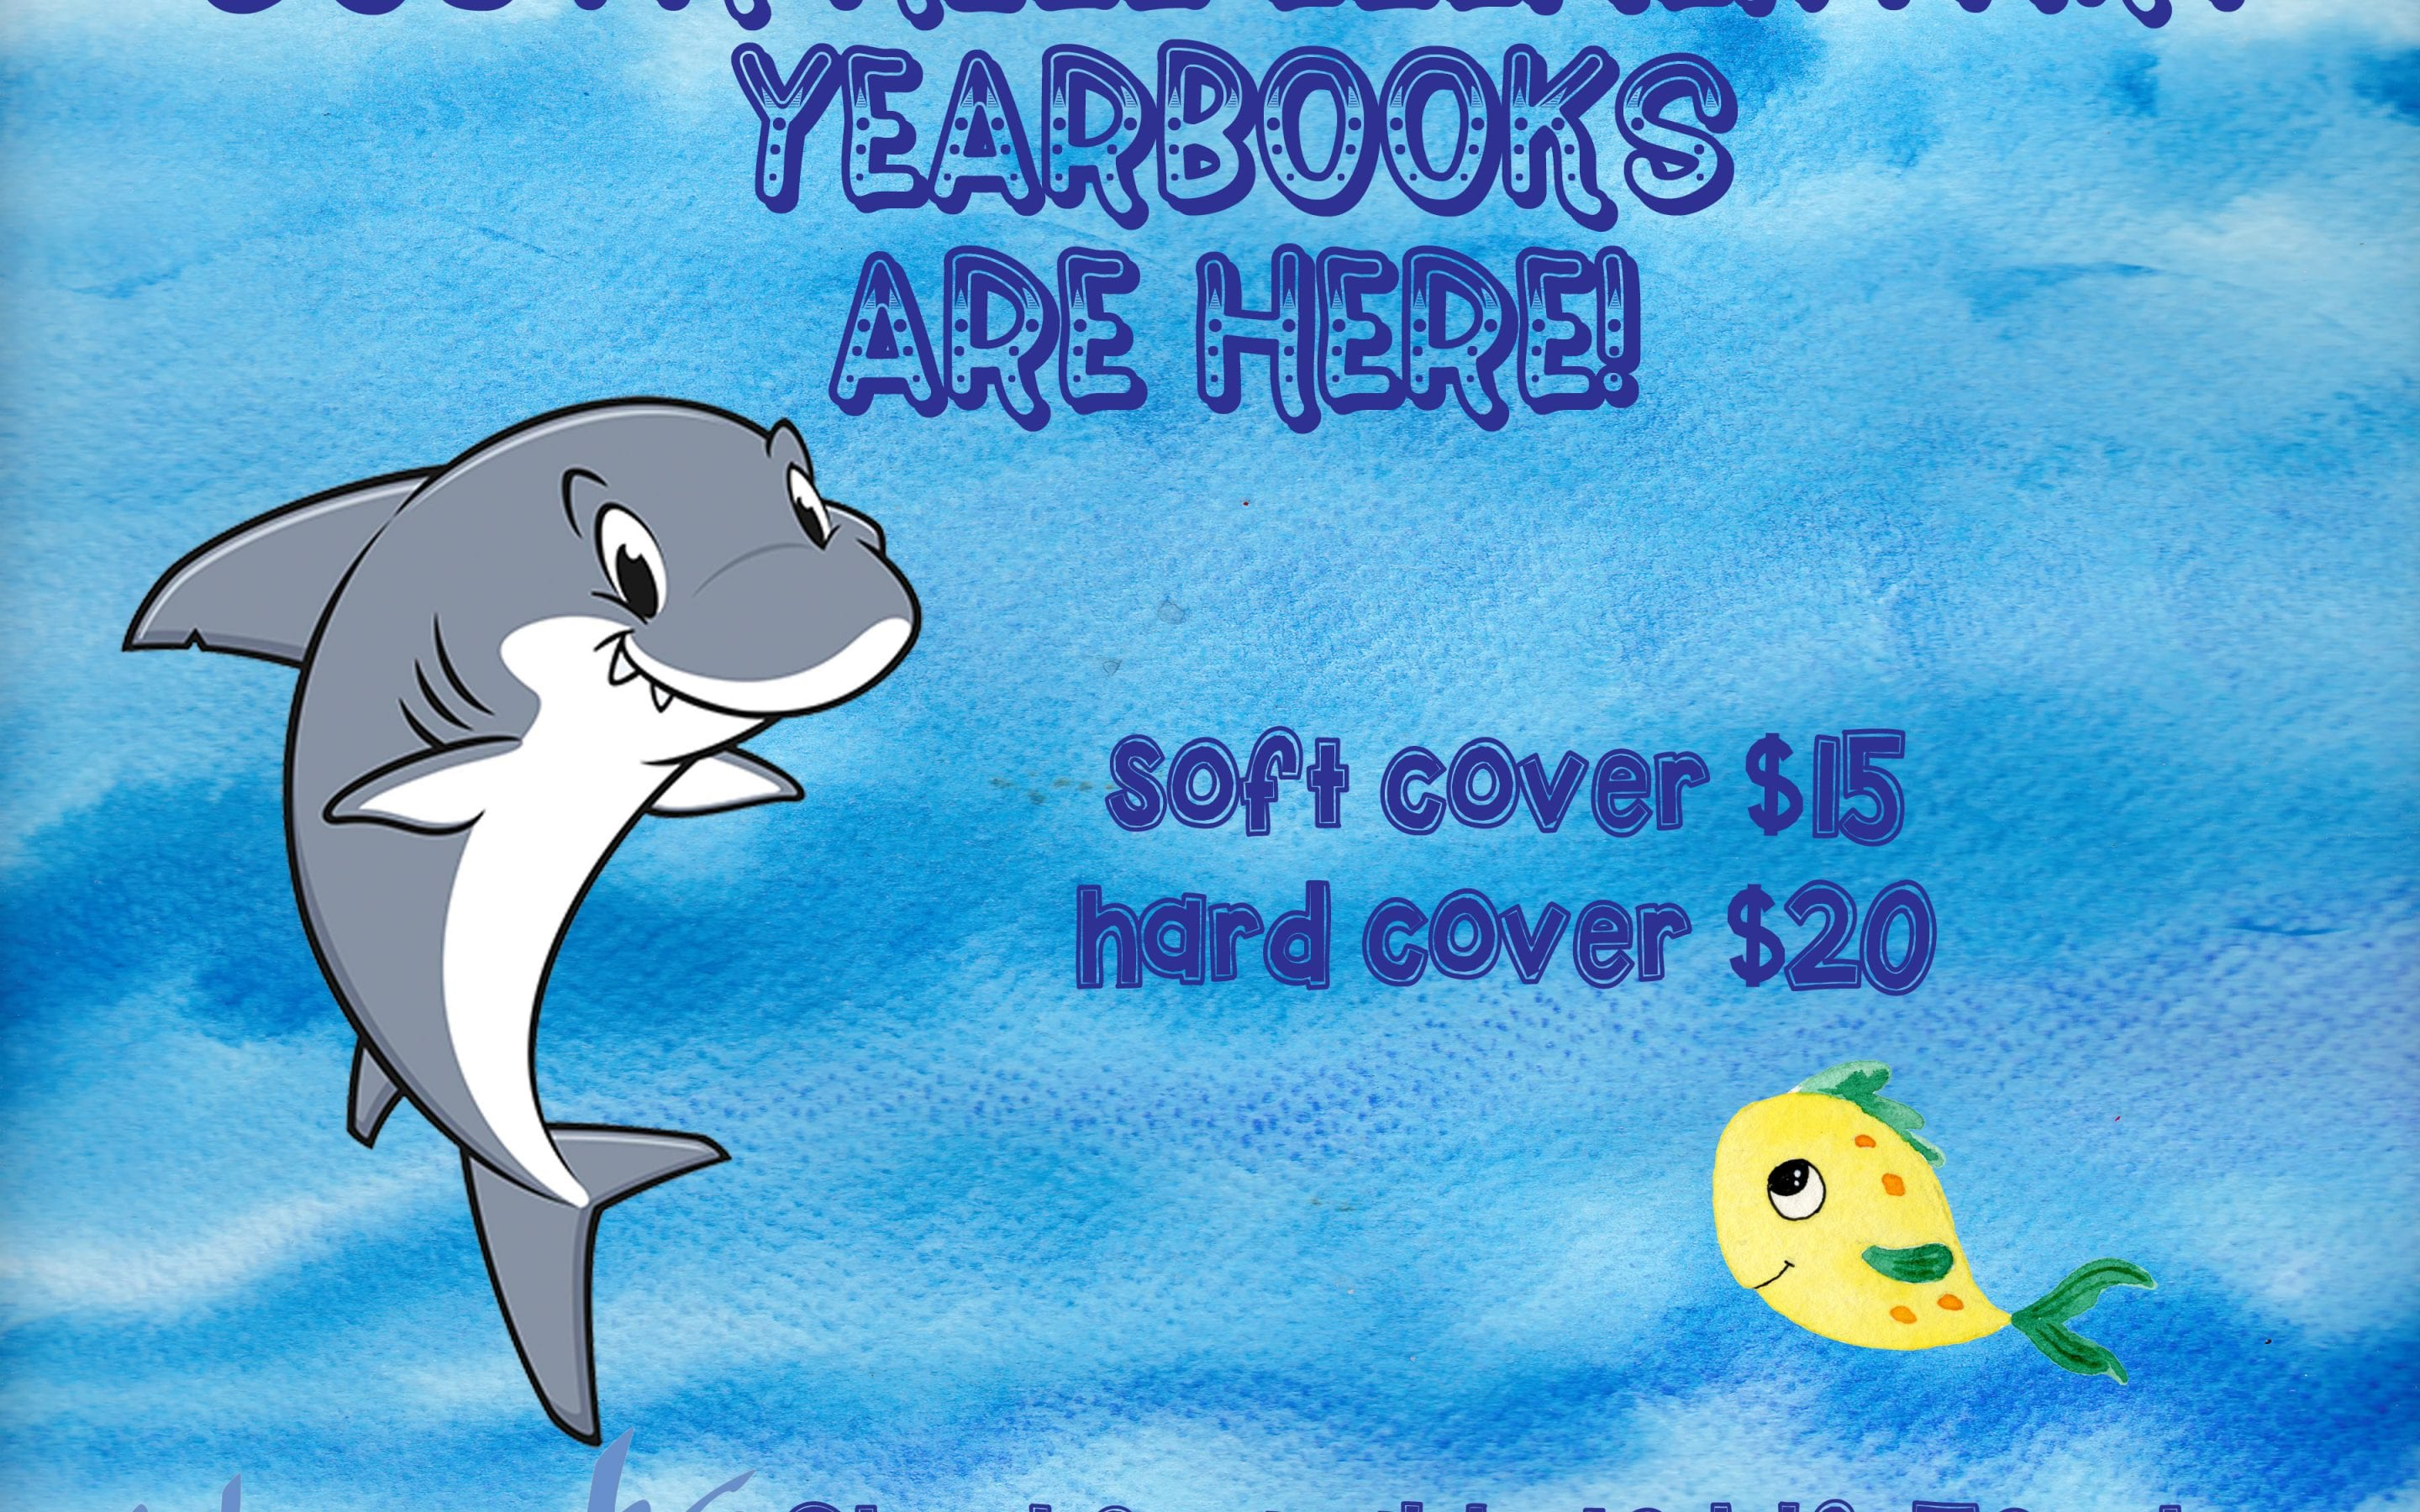 Yearbooks are here and available!